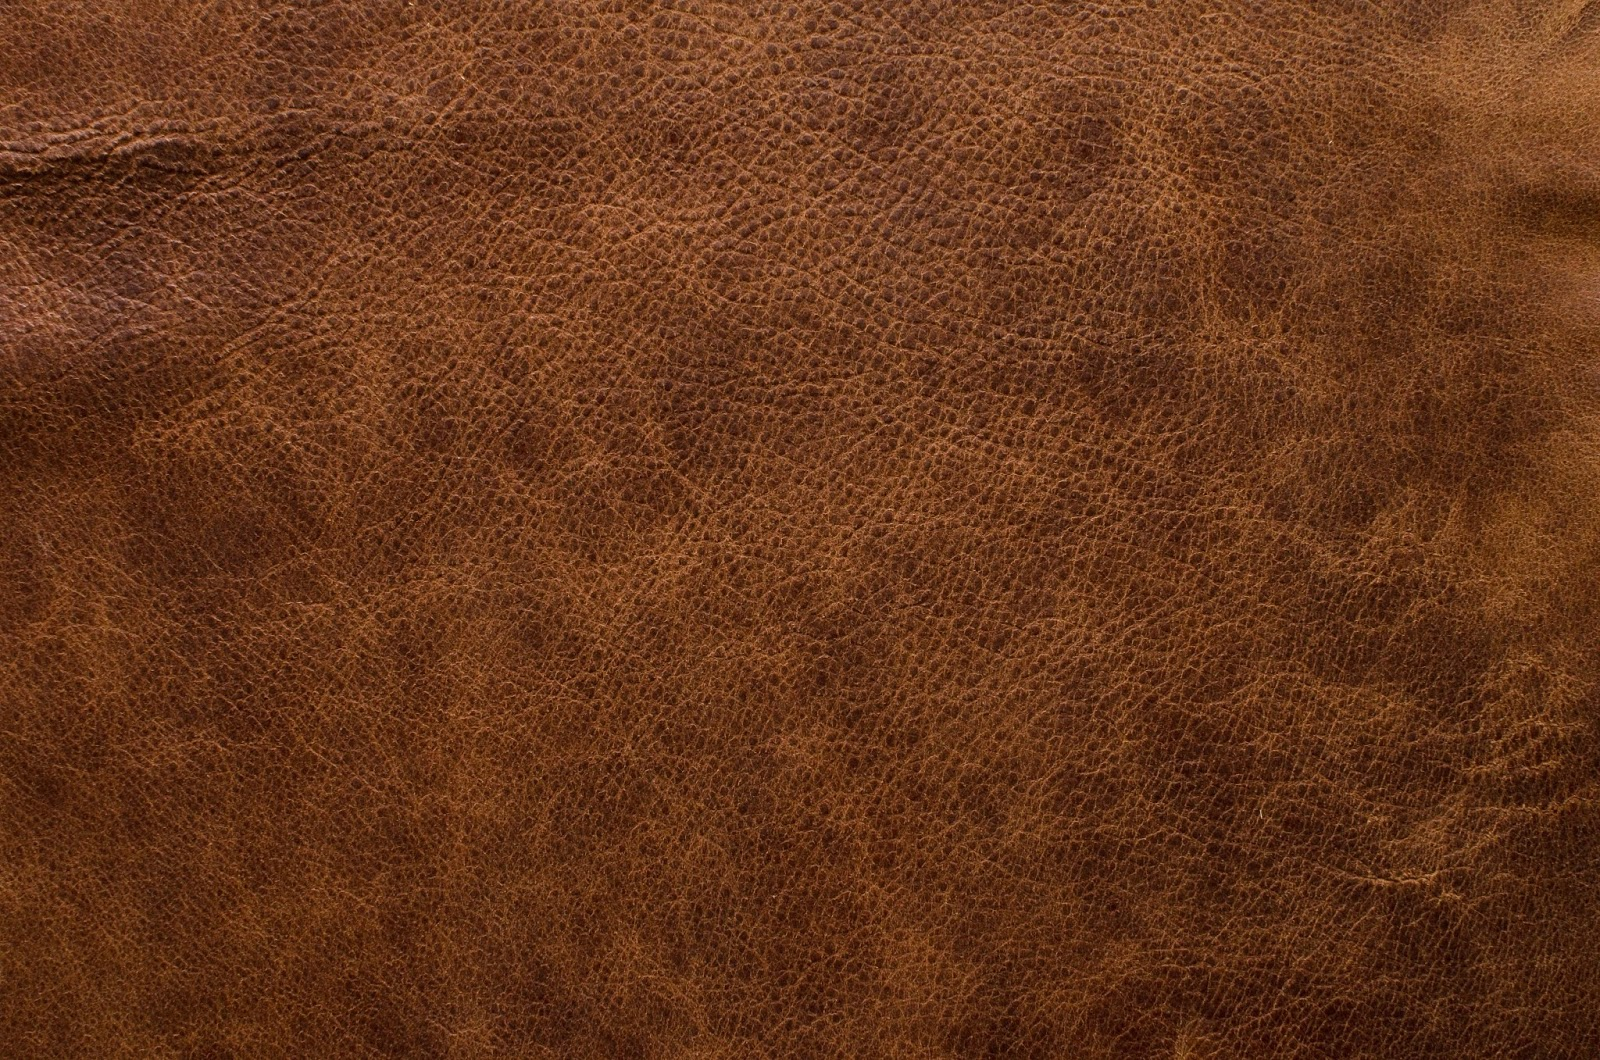 Amazoncom Customer reviews Leather Restore Leather